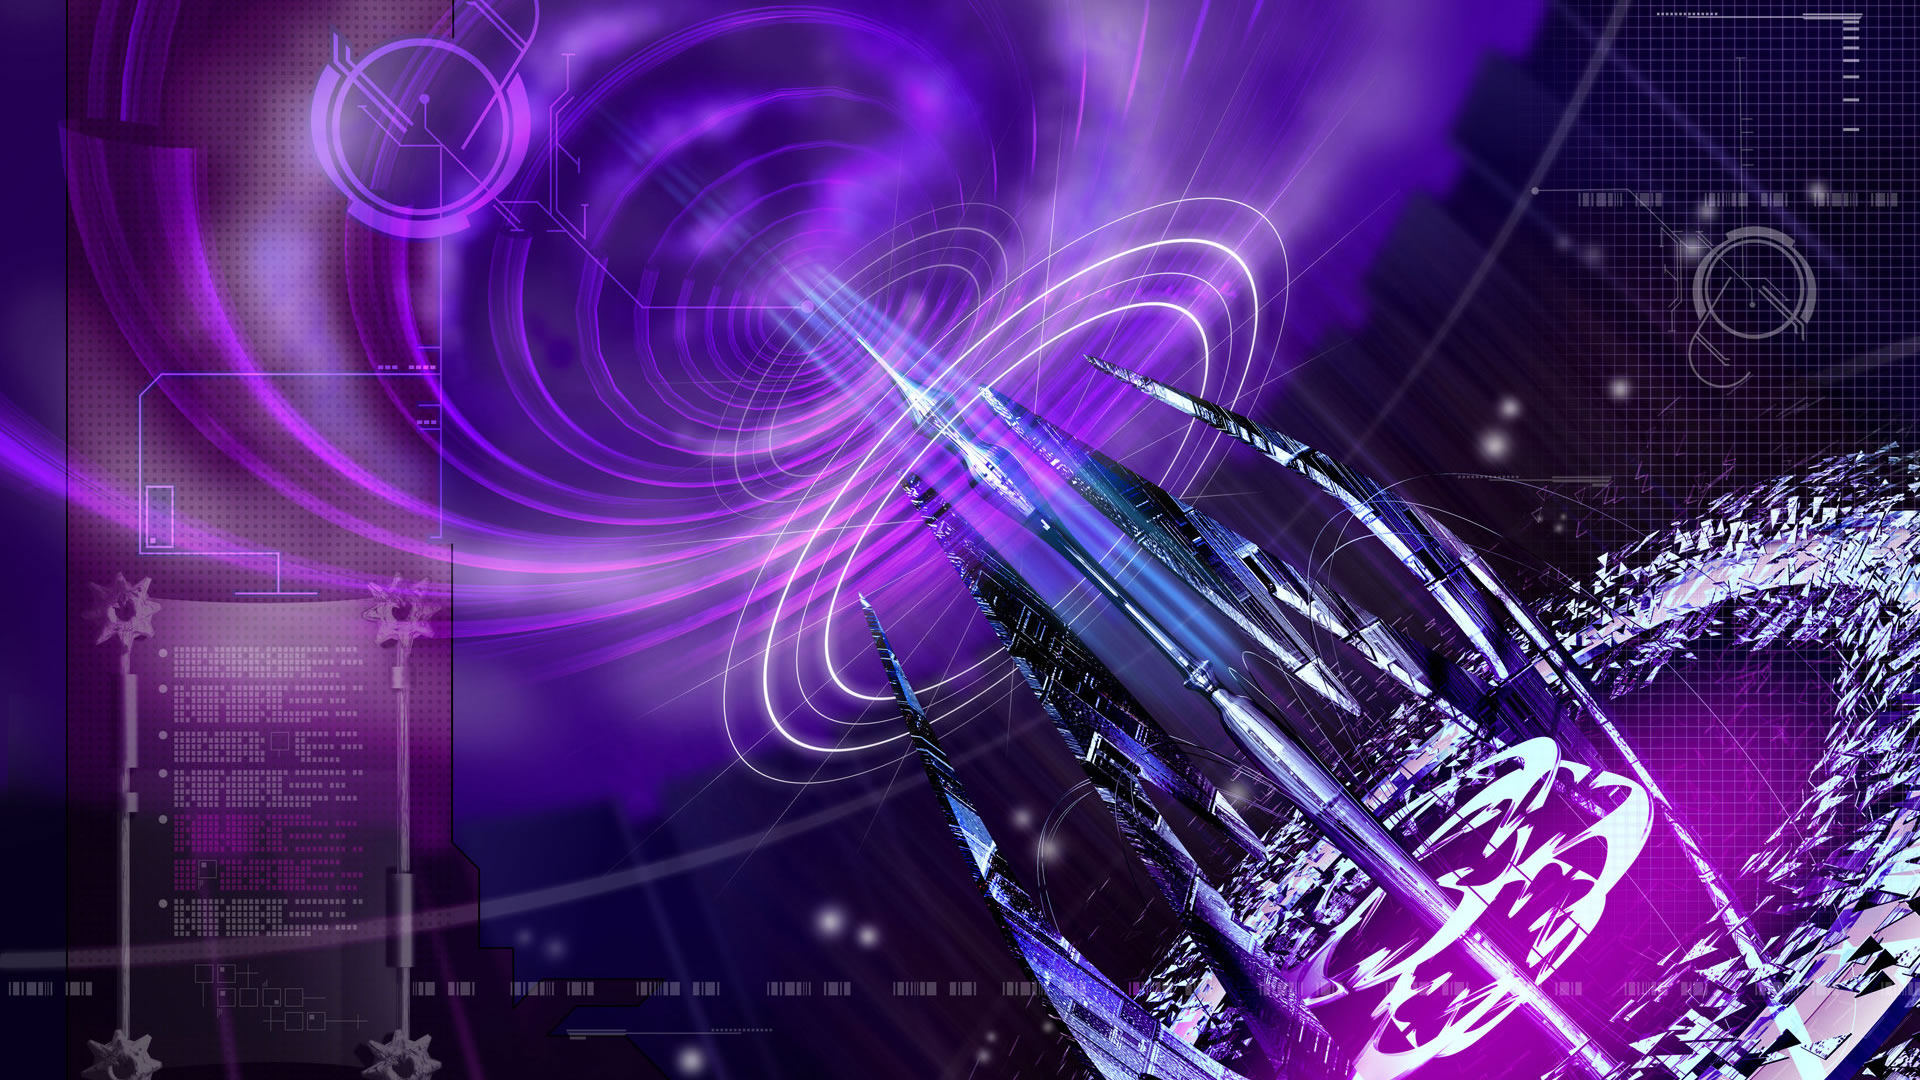 Cool Hd Wallpapers Backgrounds: Cool Purple Wallpapers HD